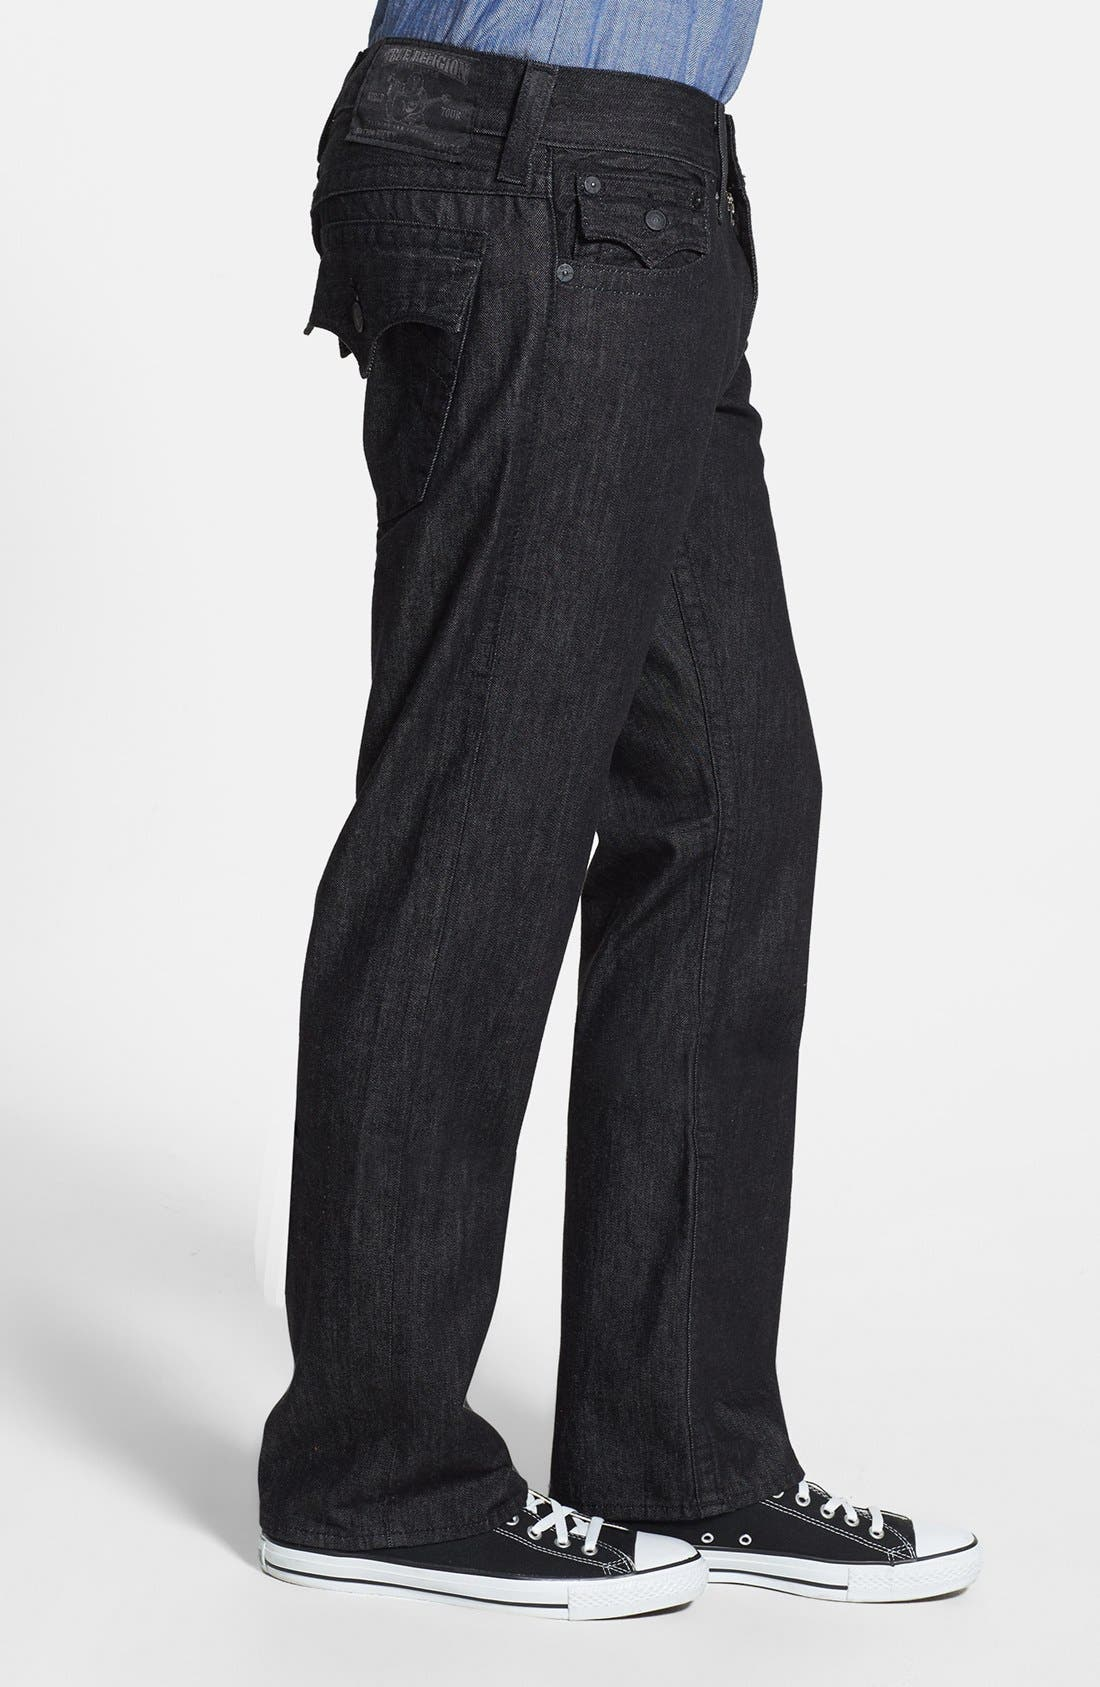 'Ricky' Relaxed Fit Jeans,                             Alternate thumbnail 3, color,                             001